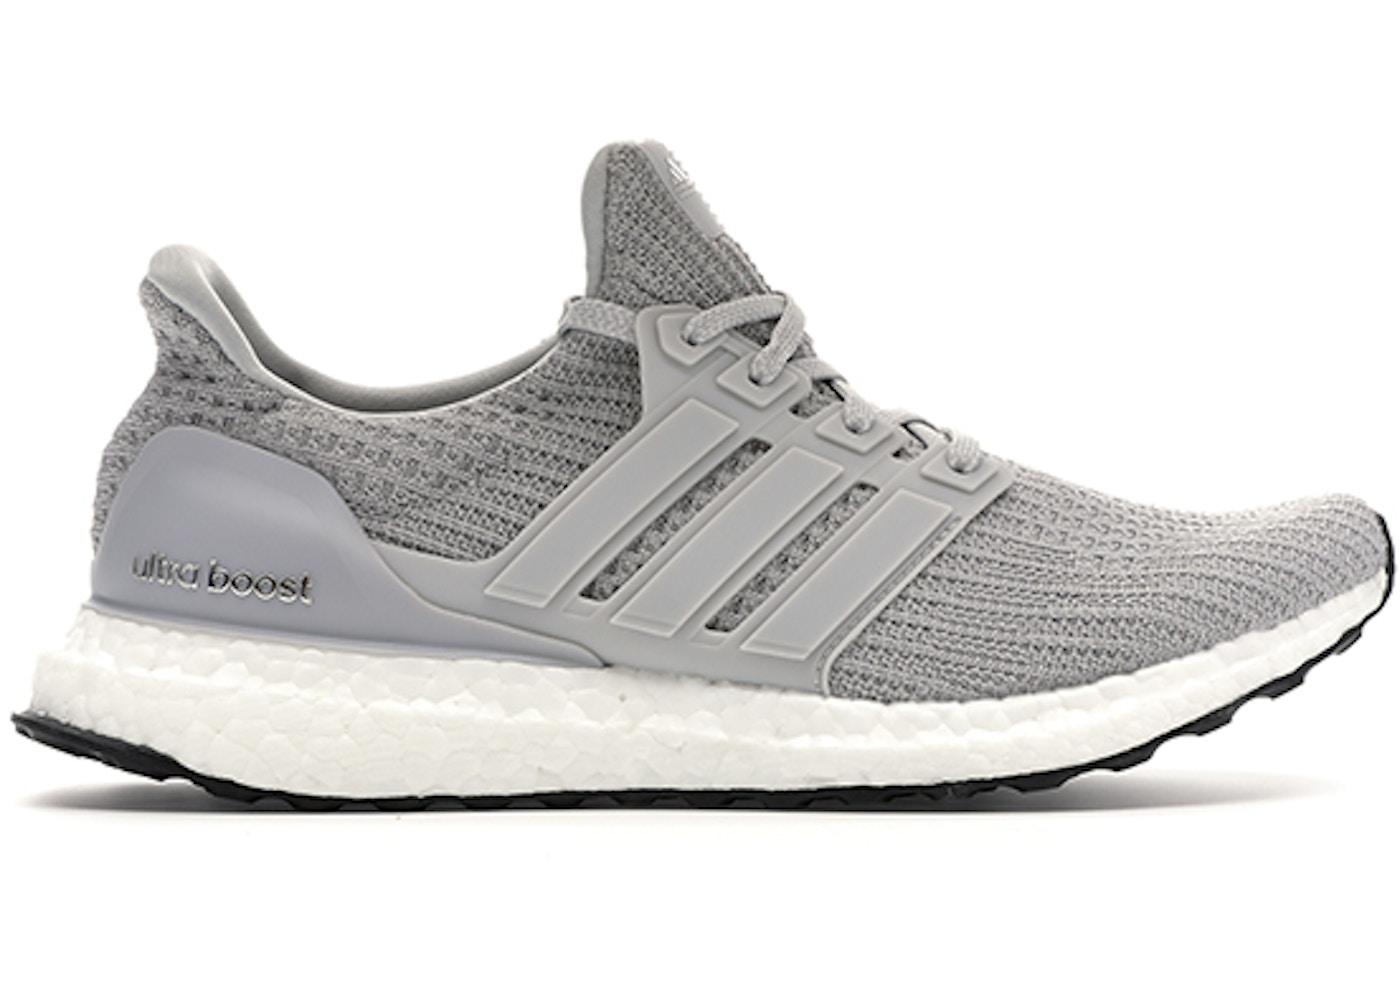 b19d16a3d adidas Ultra Boost 4.0 Grey Two - BB6167